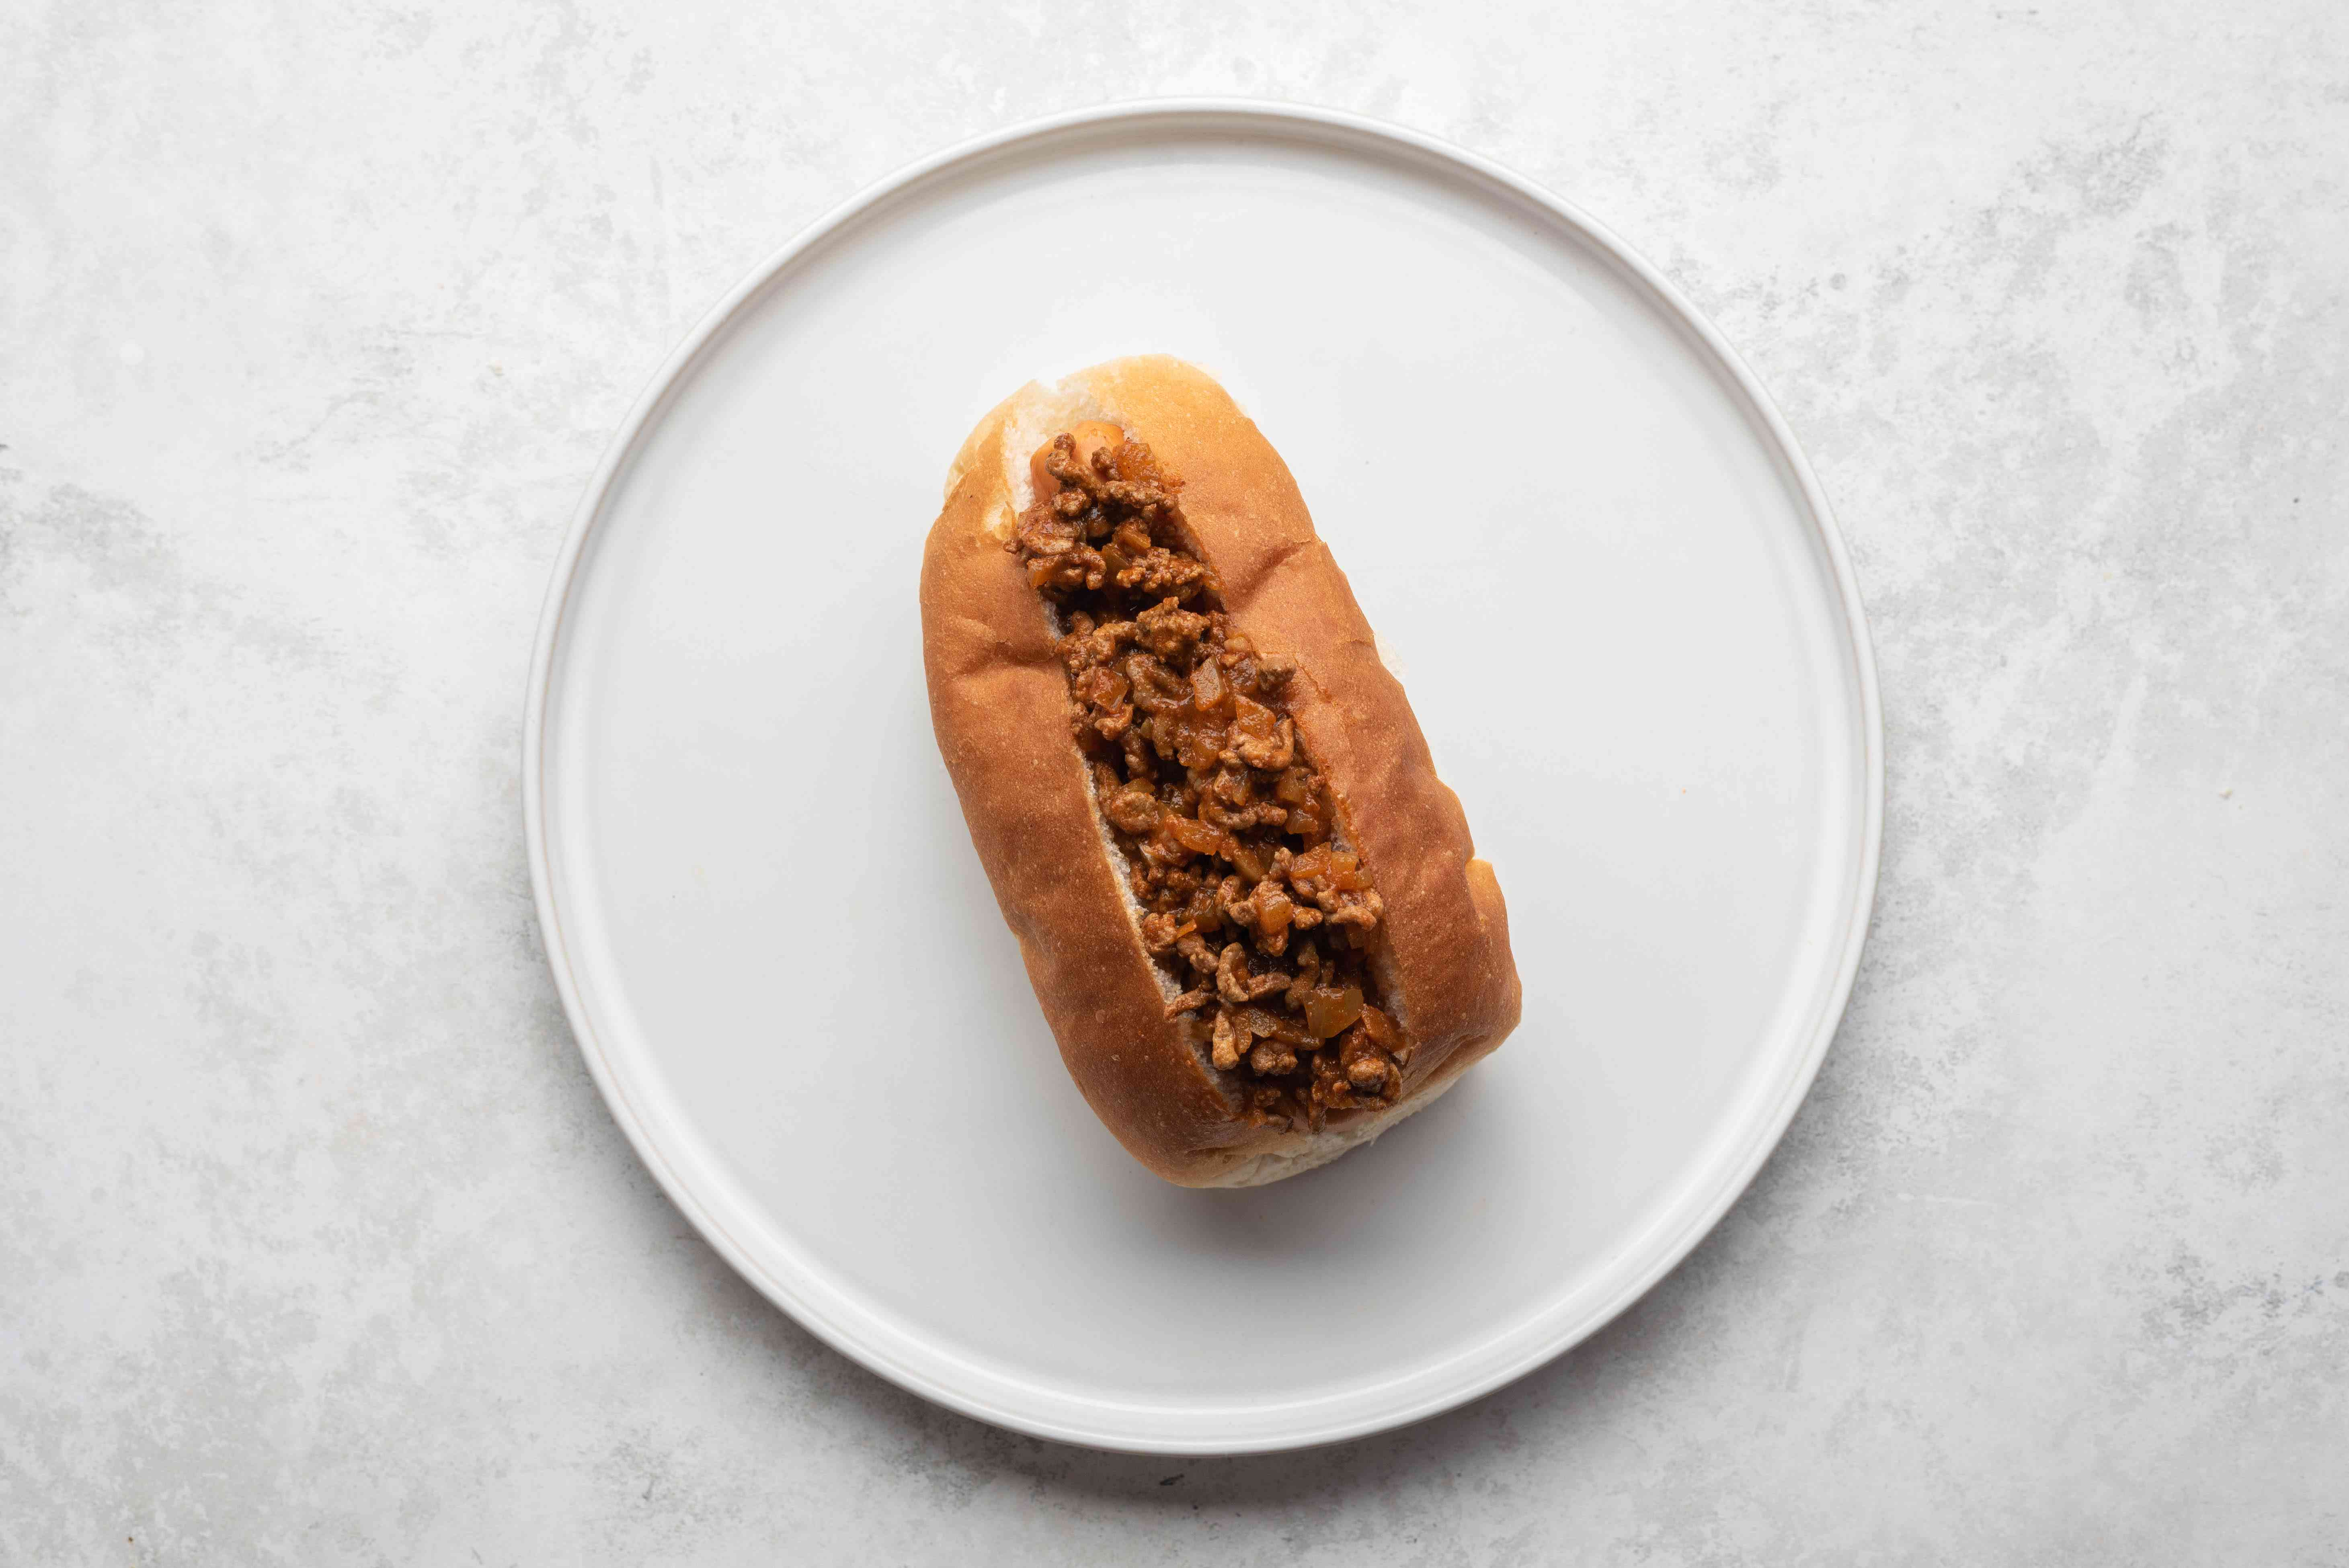 hot dog with beef mixture on top